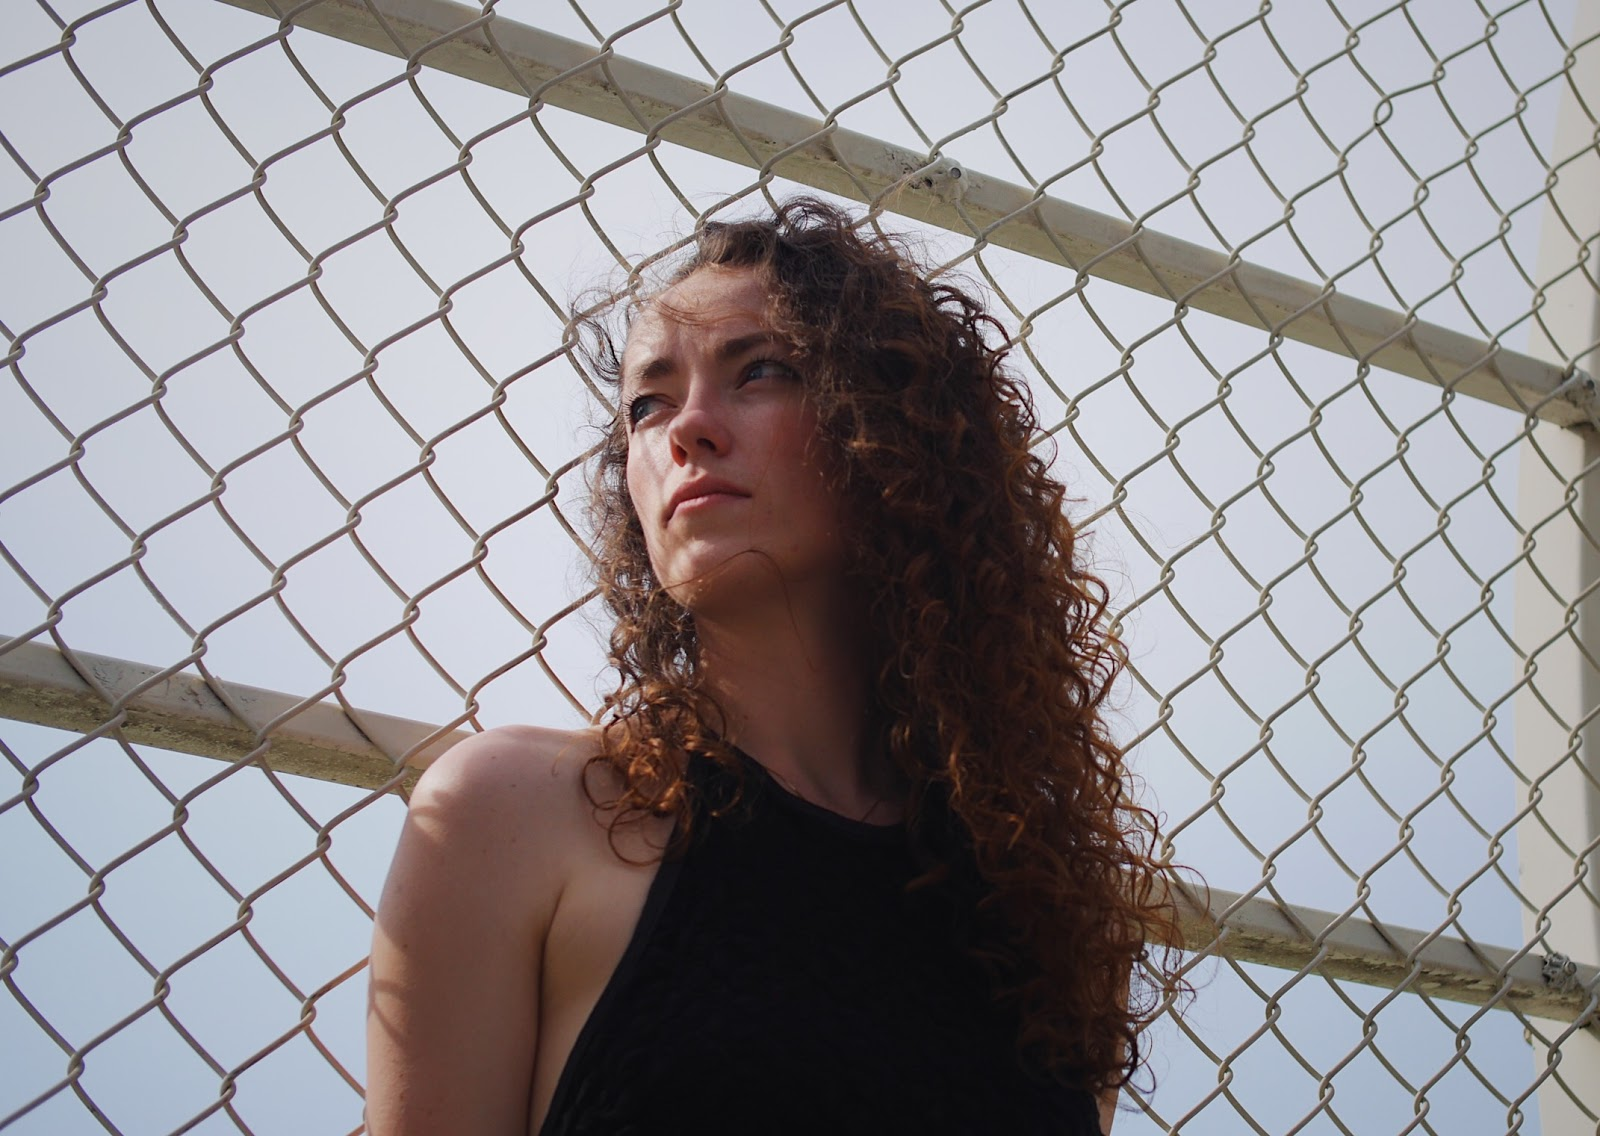 PREMIERE: Kailey Prior works her way through life on 'We're Okay'